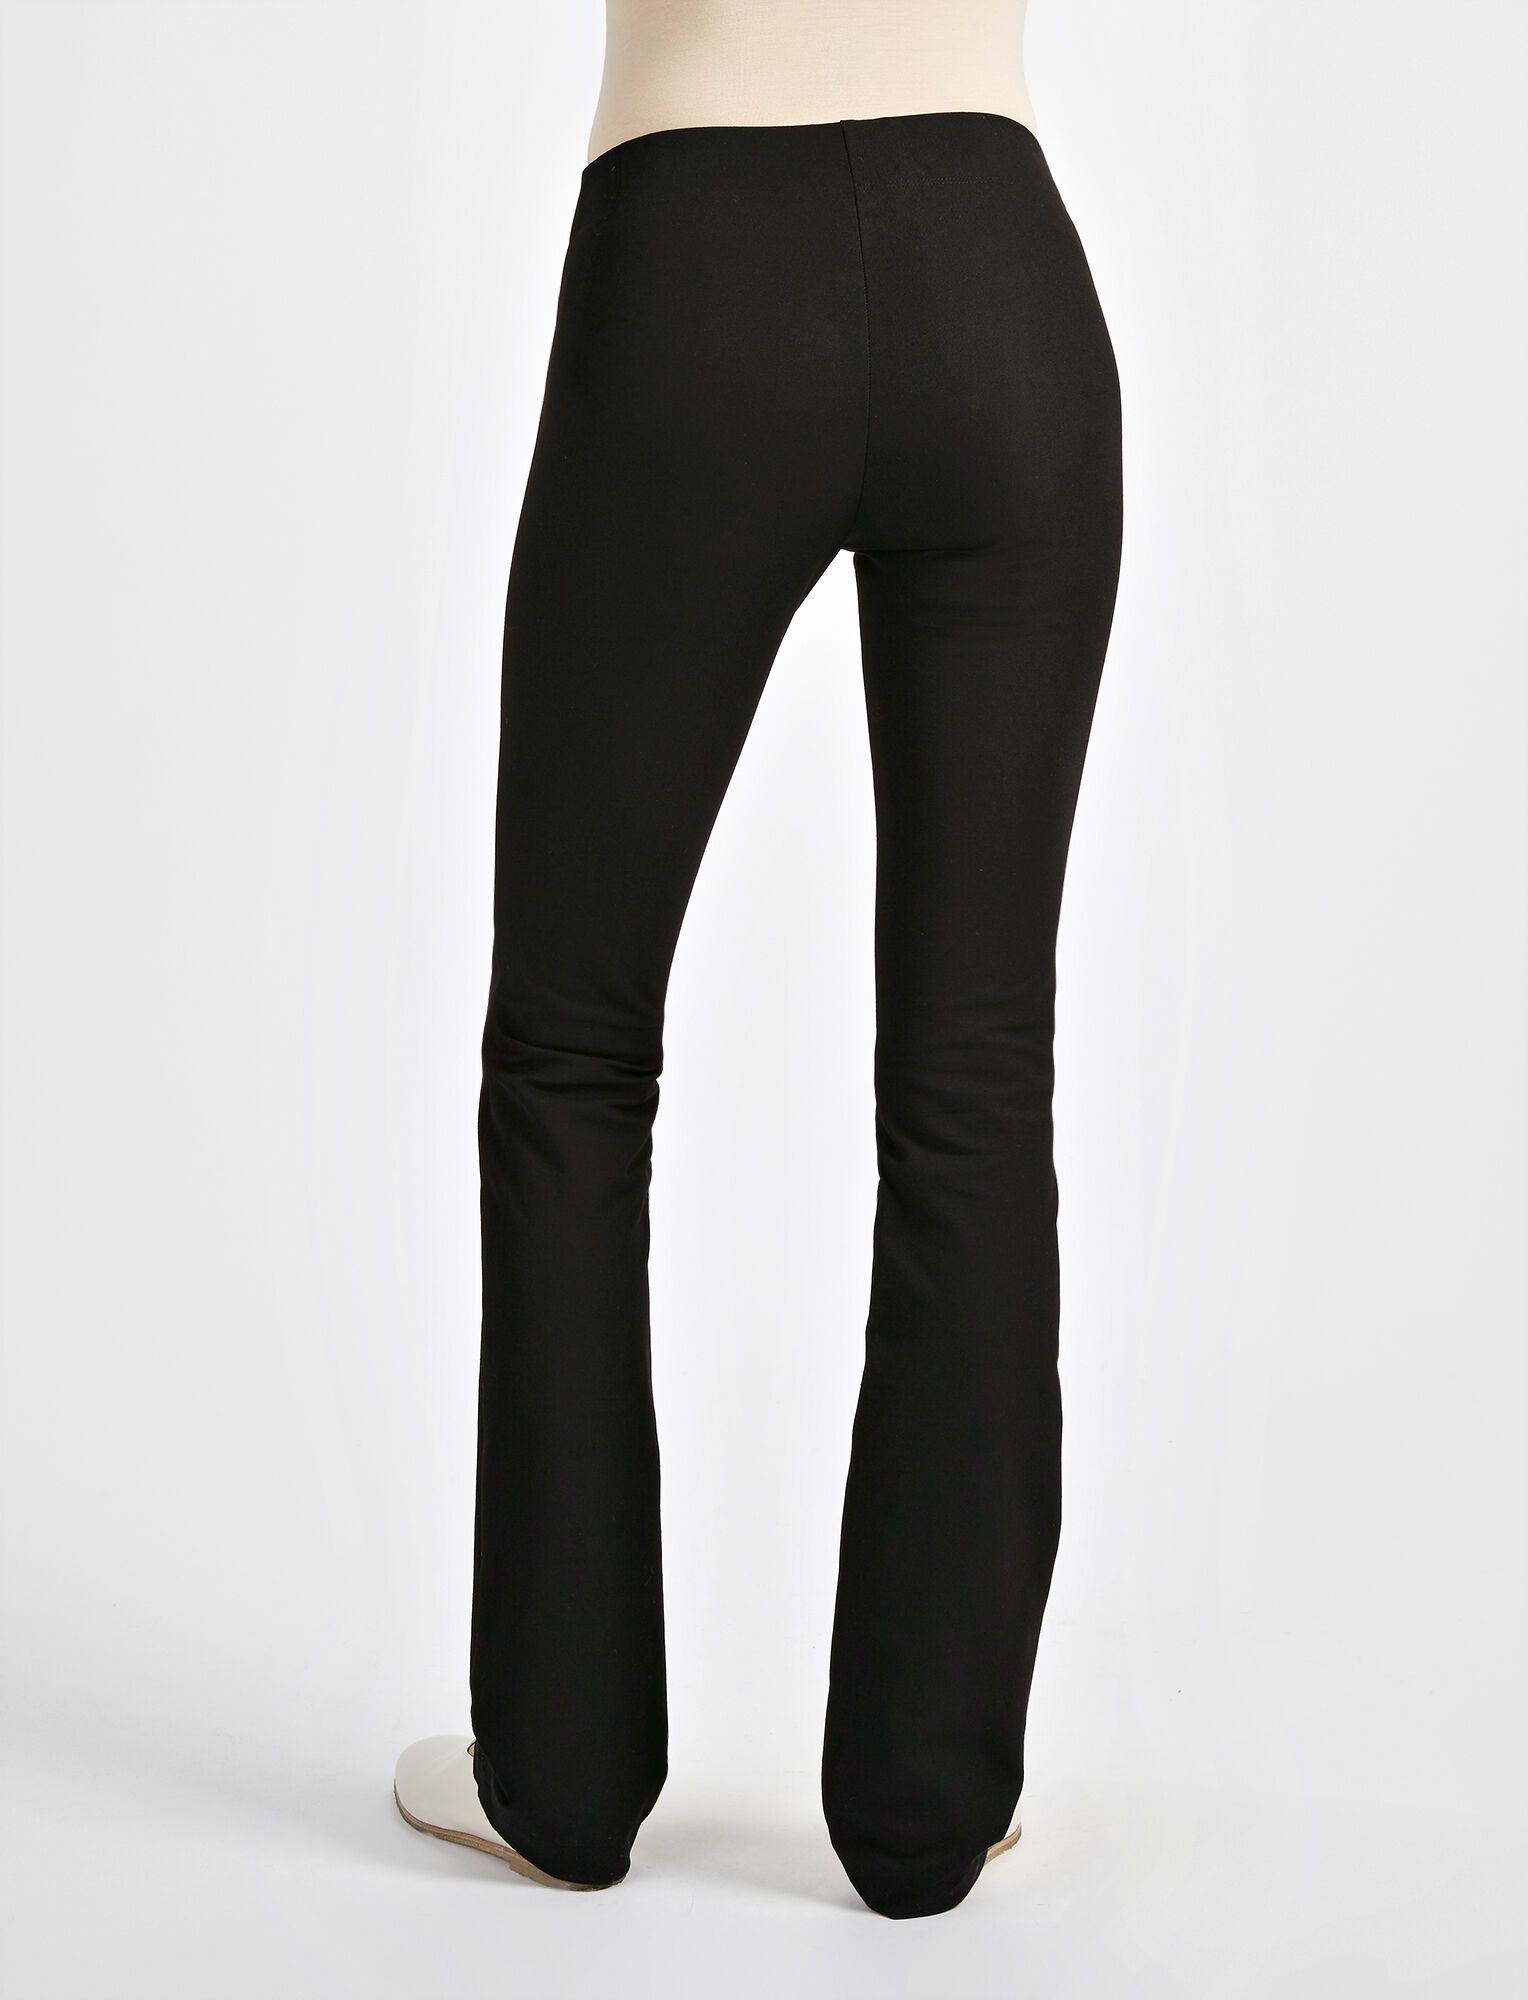 Joseph, Pantalon Lex en gabardine stretch, in BLACK